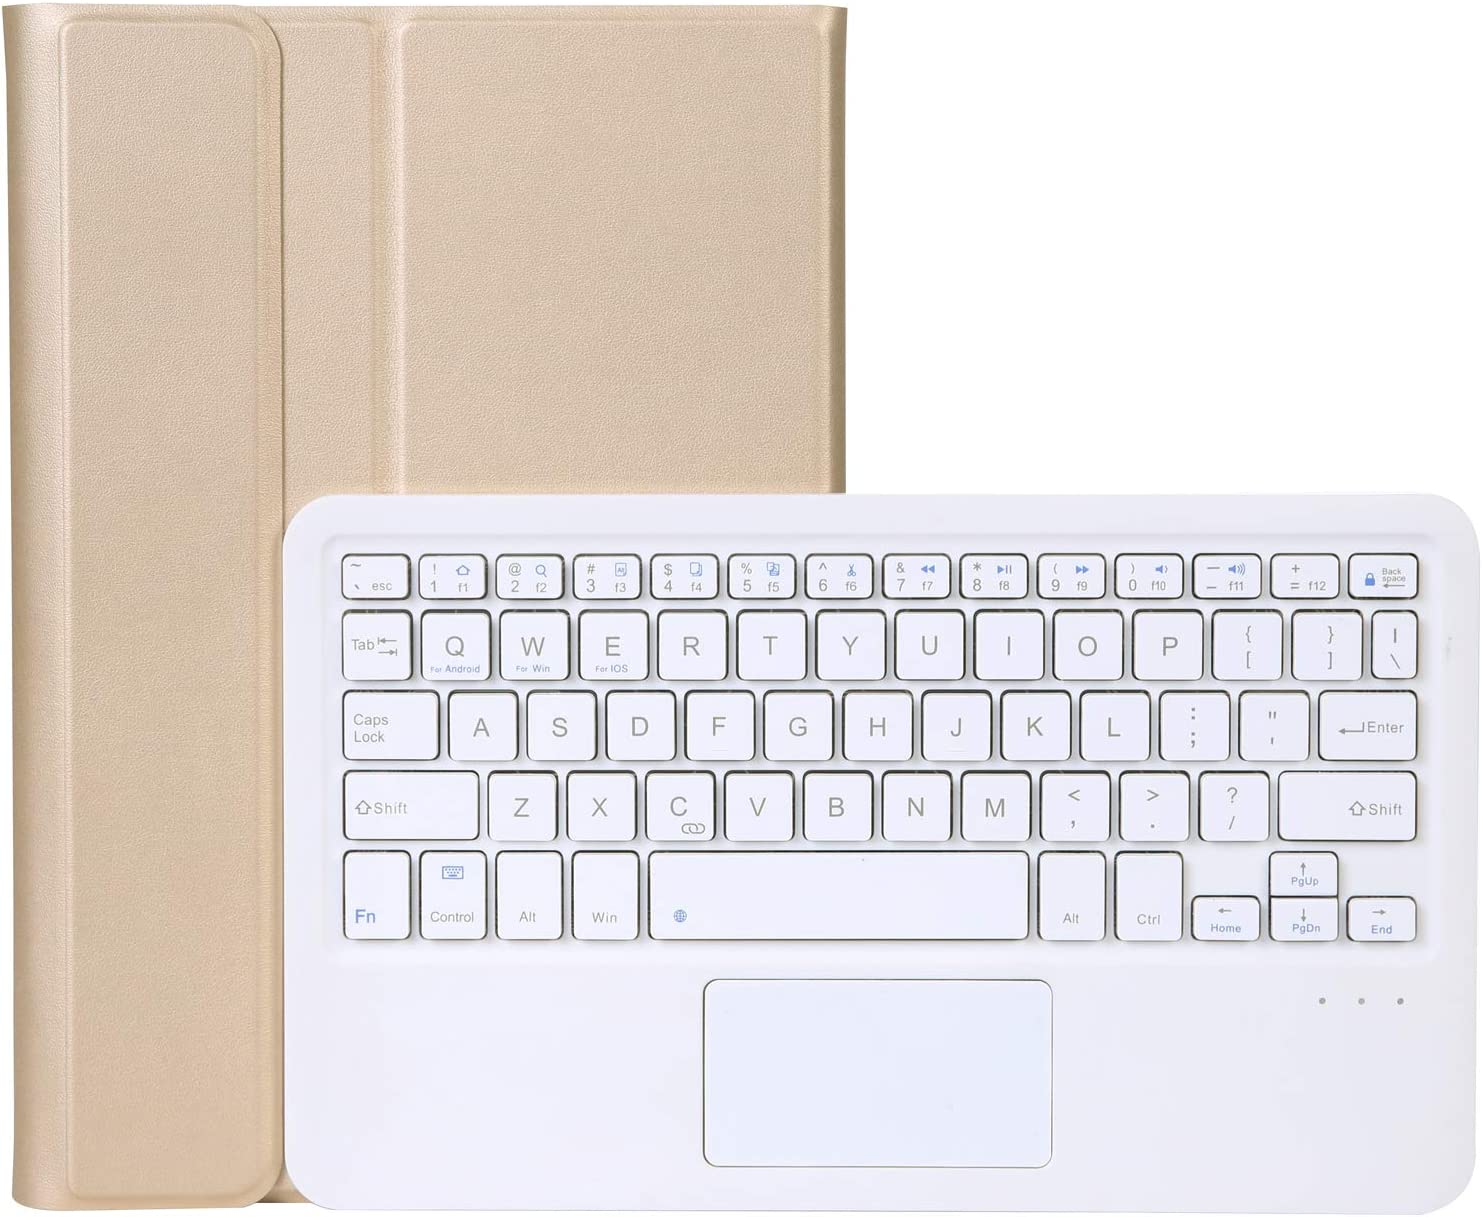 NB Wireless Bluetooth Keyboard Cover for Samsung Galaxy Tab S6 Lite 10.4 [Model: SM-P610/SM-P615], Fine Synthetic Leather Protective Cover, Removable Keyboard & Touch Mouse